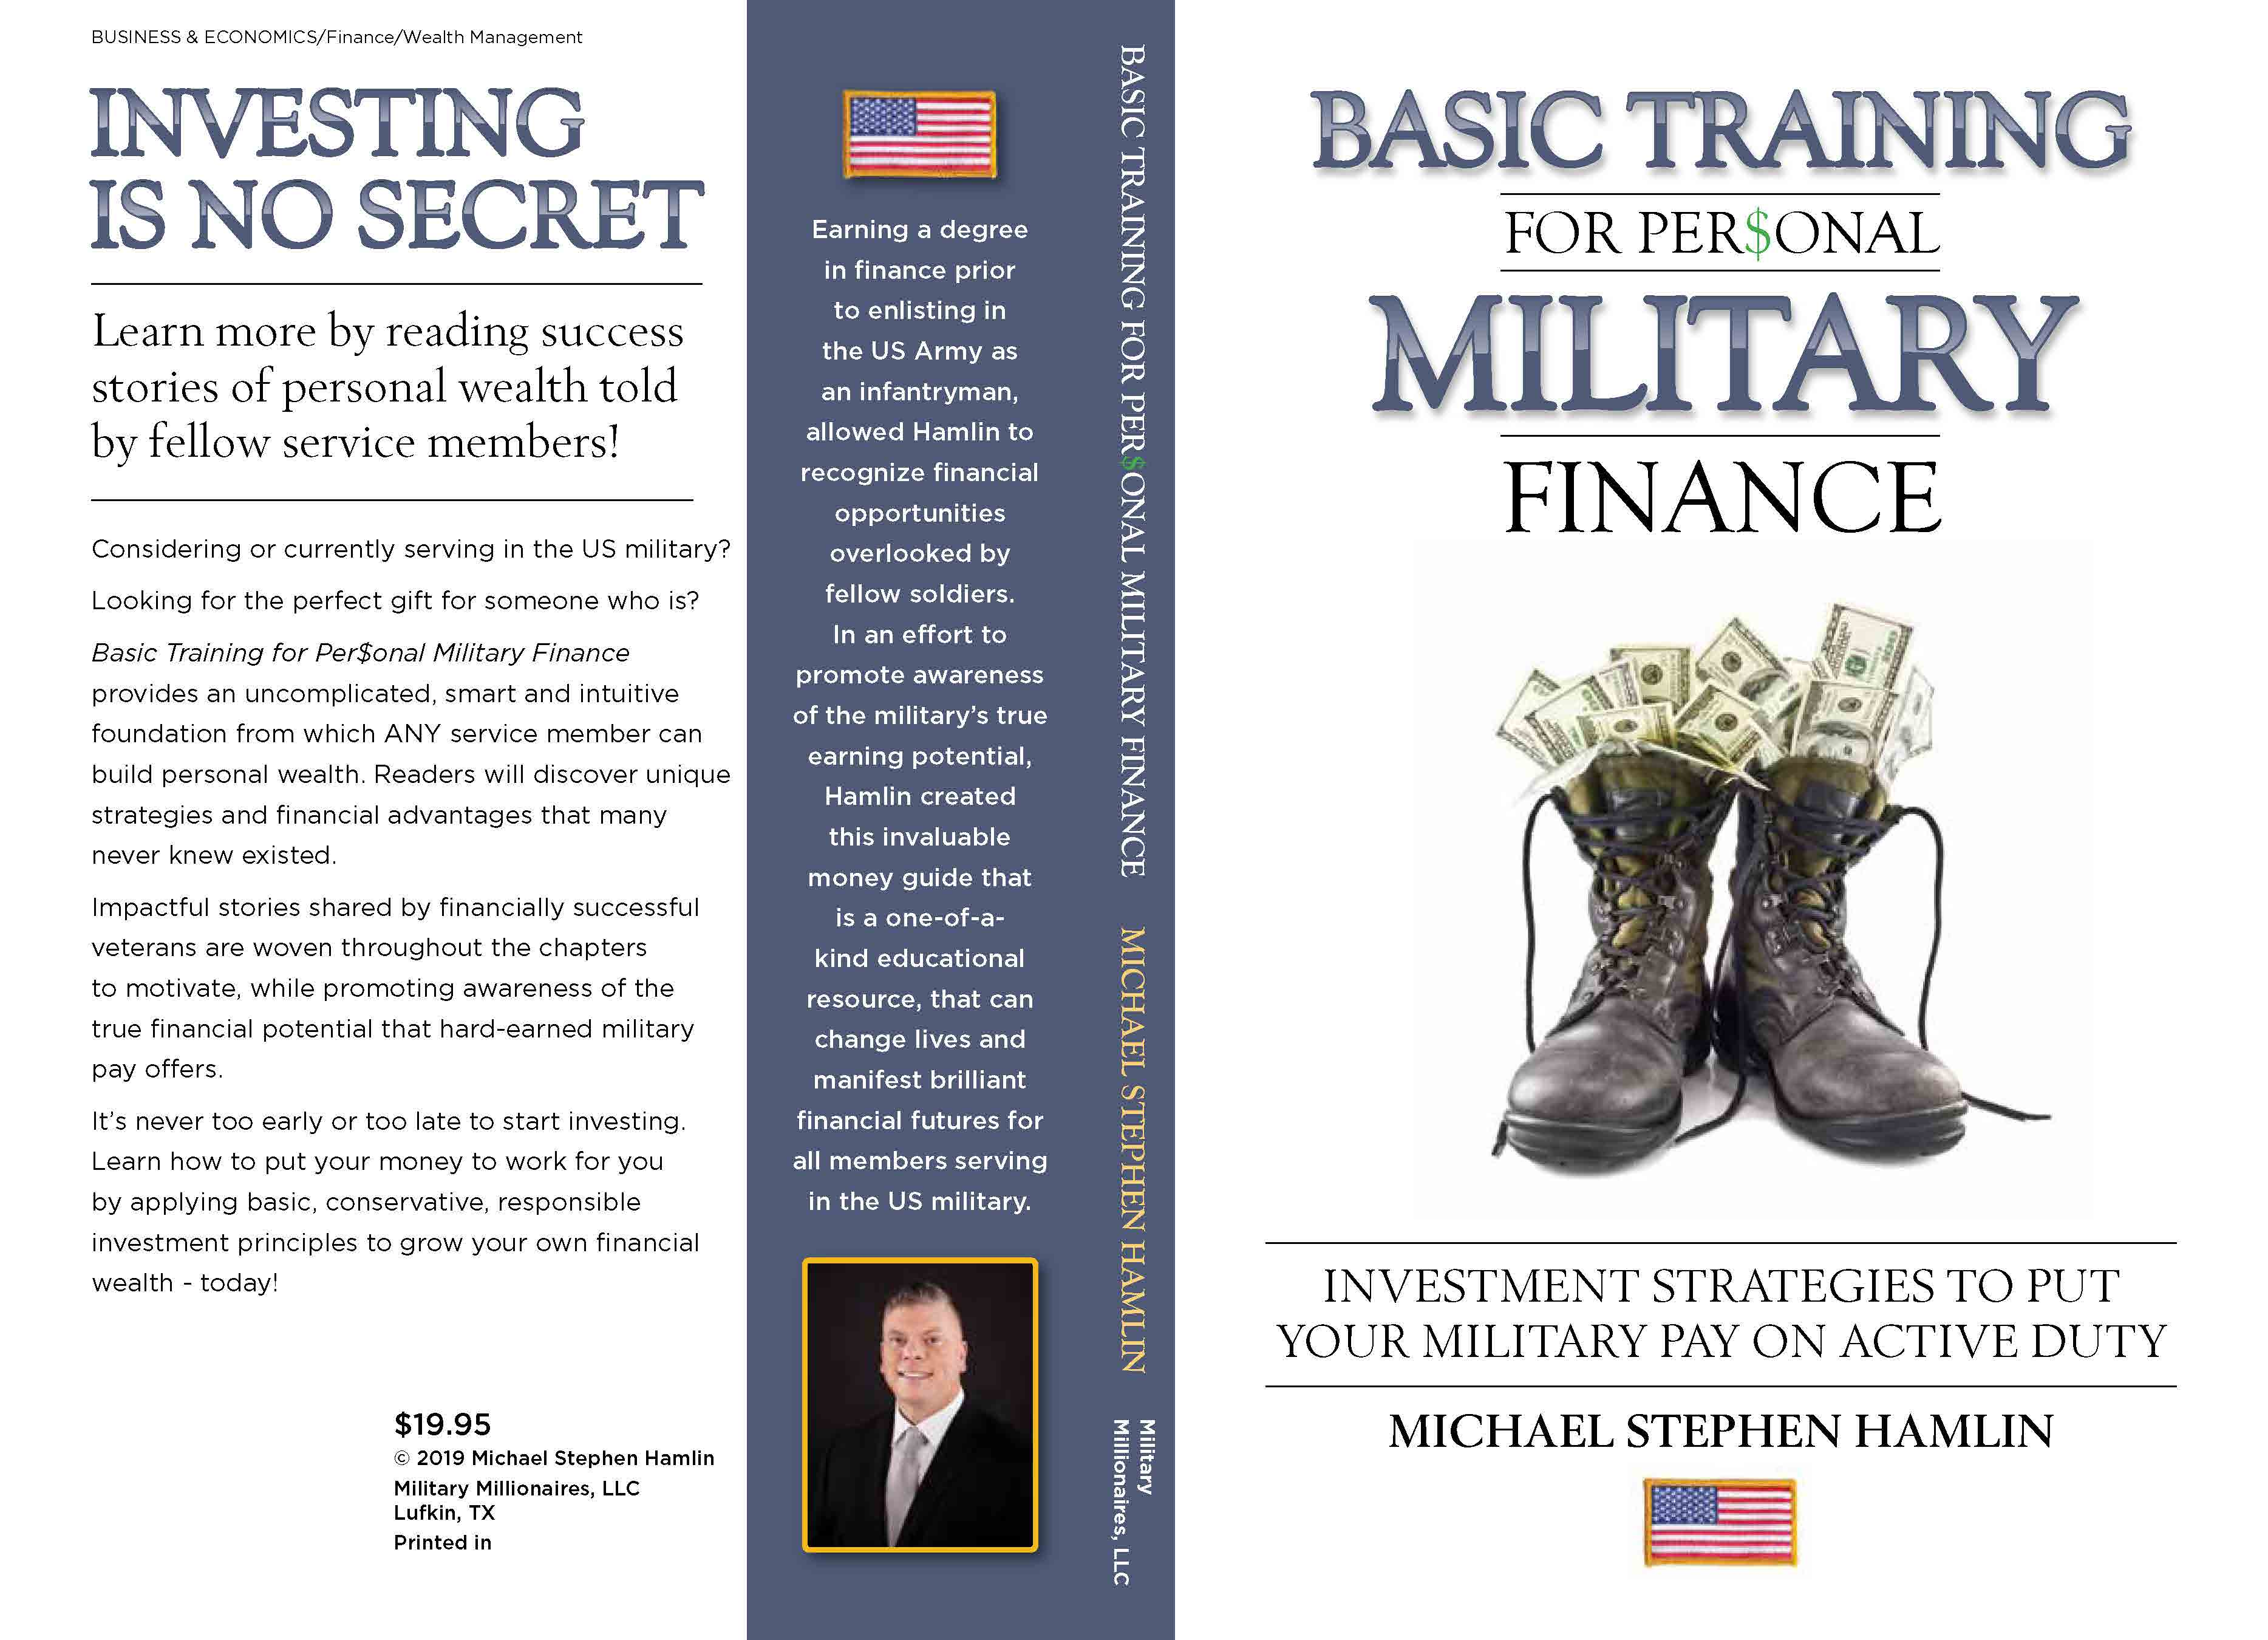 BASIC TRAINING FOR PERSONAL MILITARY FINANCE